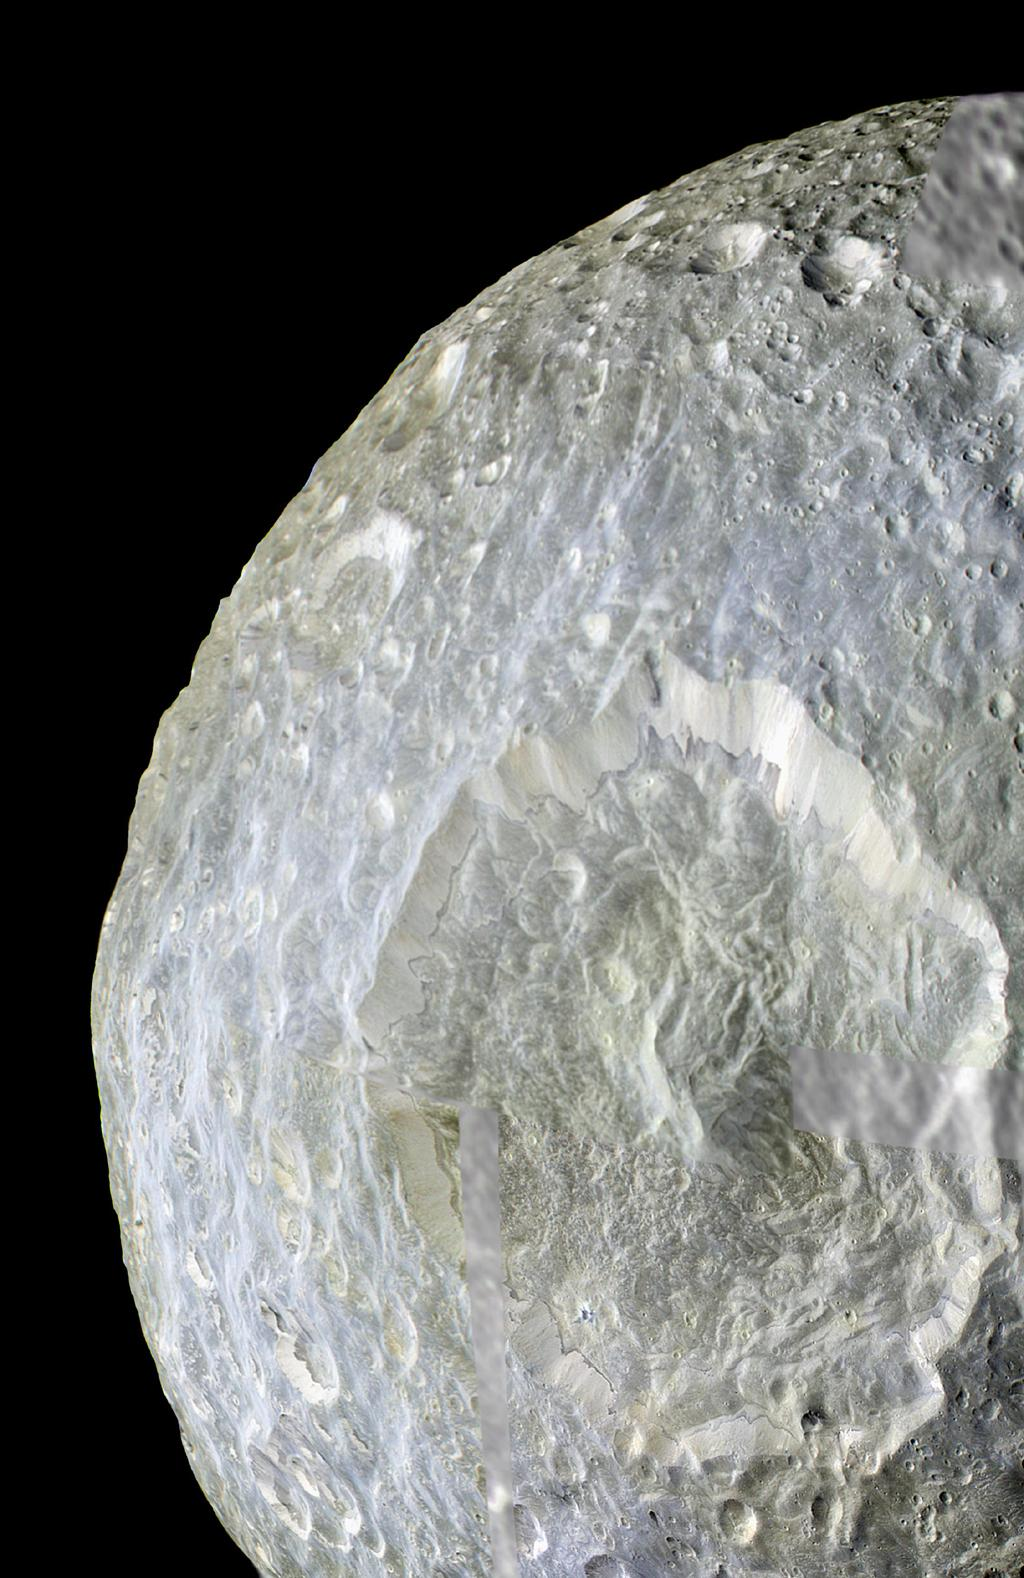 Subtle color differences on Saturn's moon Mimas are apparent in this false-color view of Herschel Crater captured during NASA's Cassini spacecraft on its closest-ever flyby of that moon.